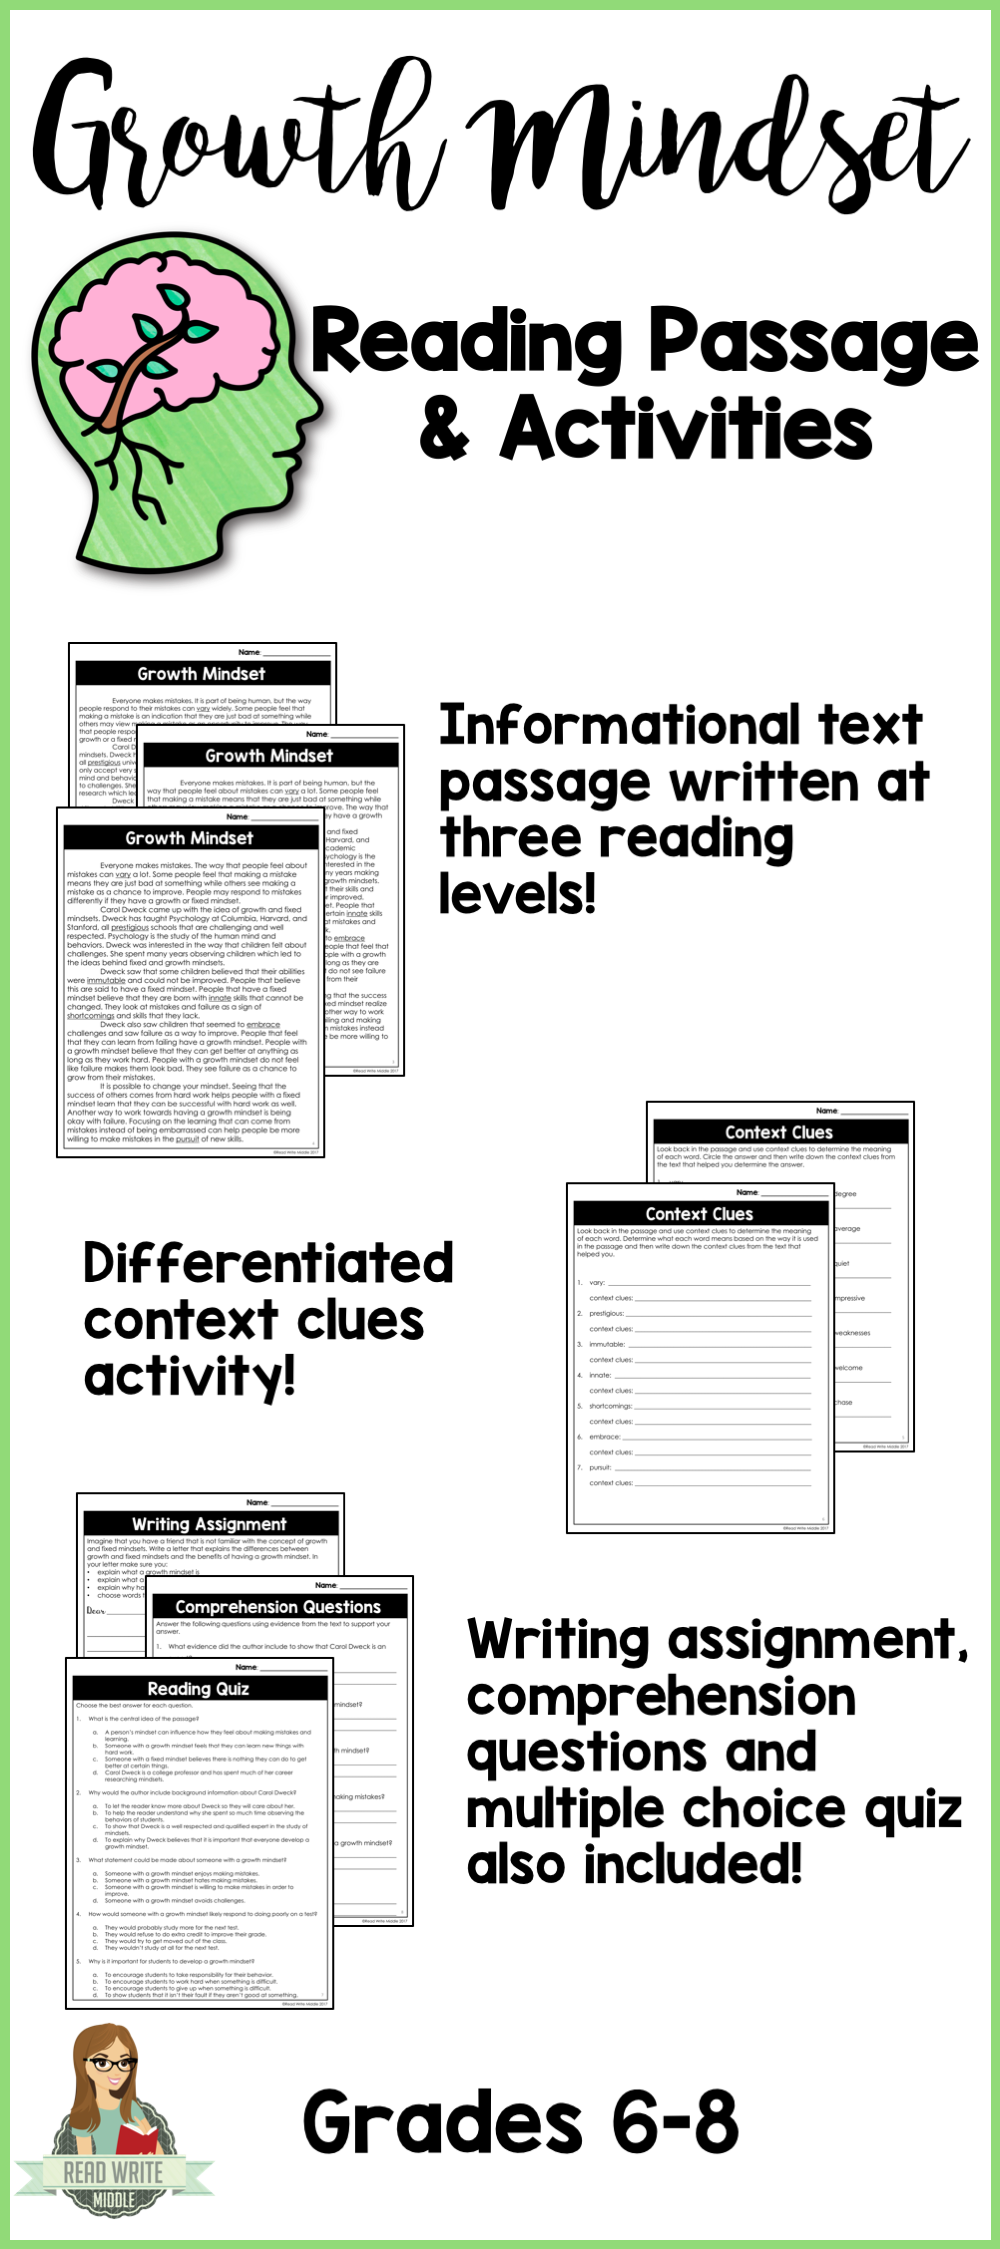 Growth Mindset Differentiated Reading Passage & Context